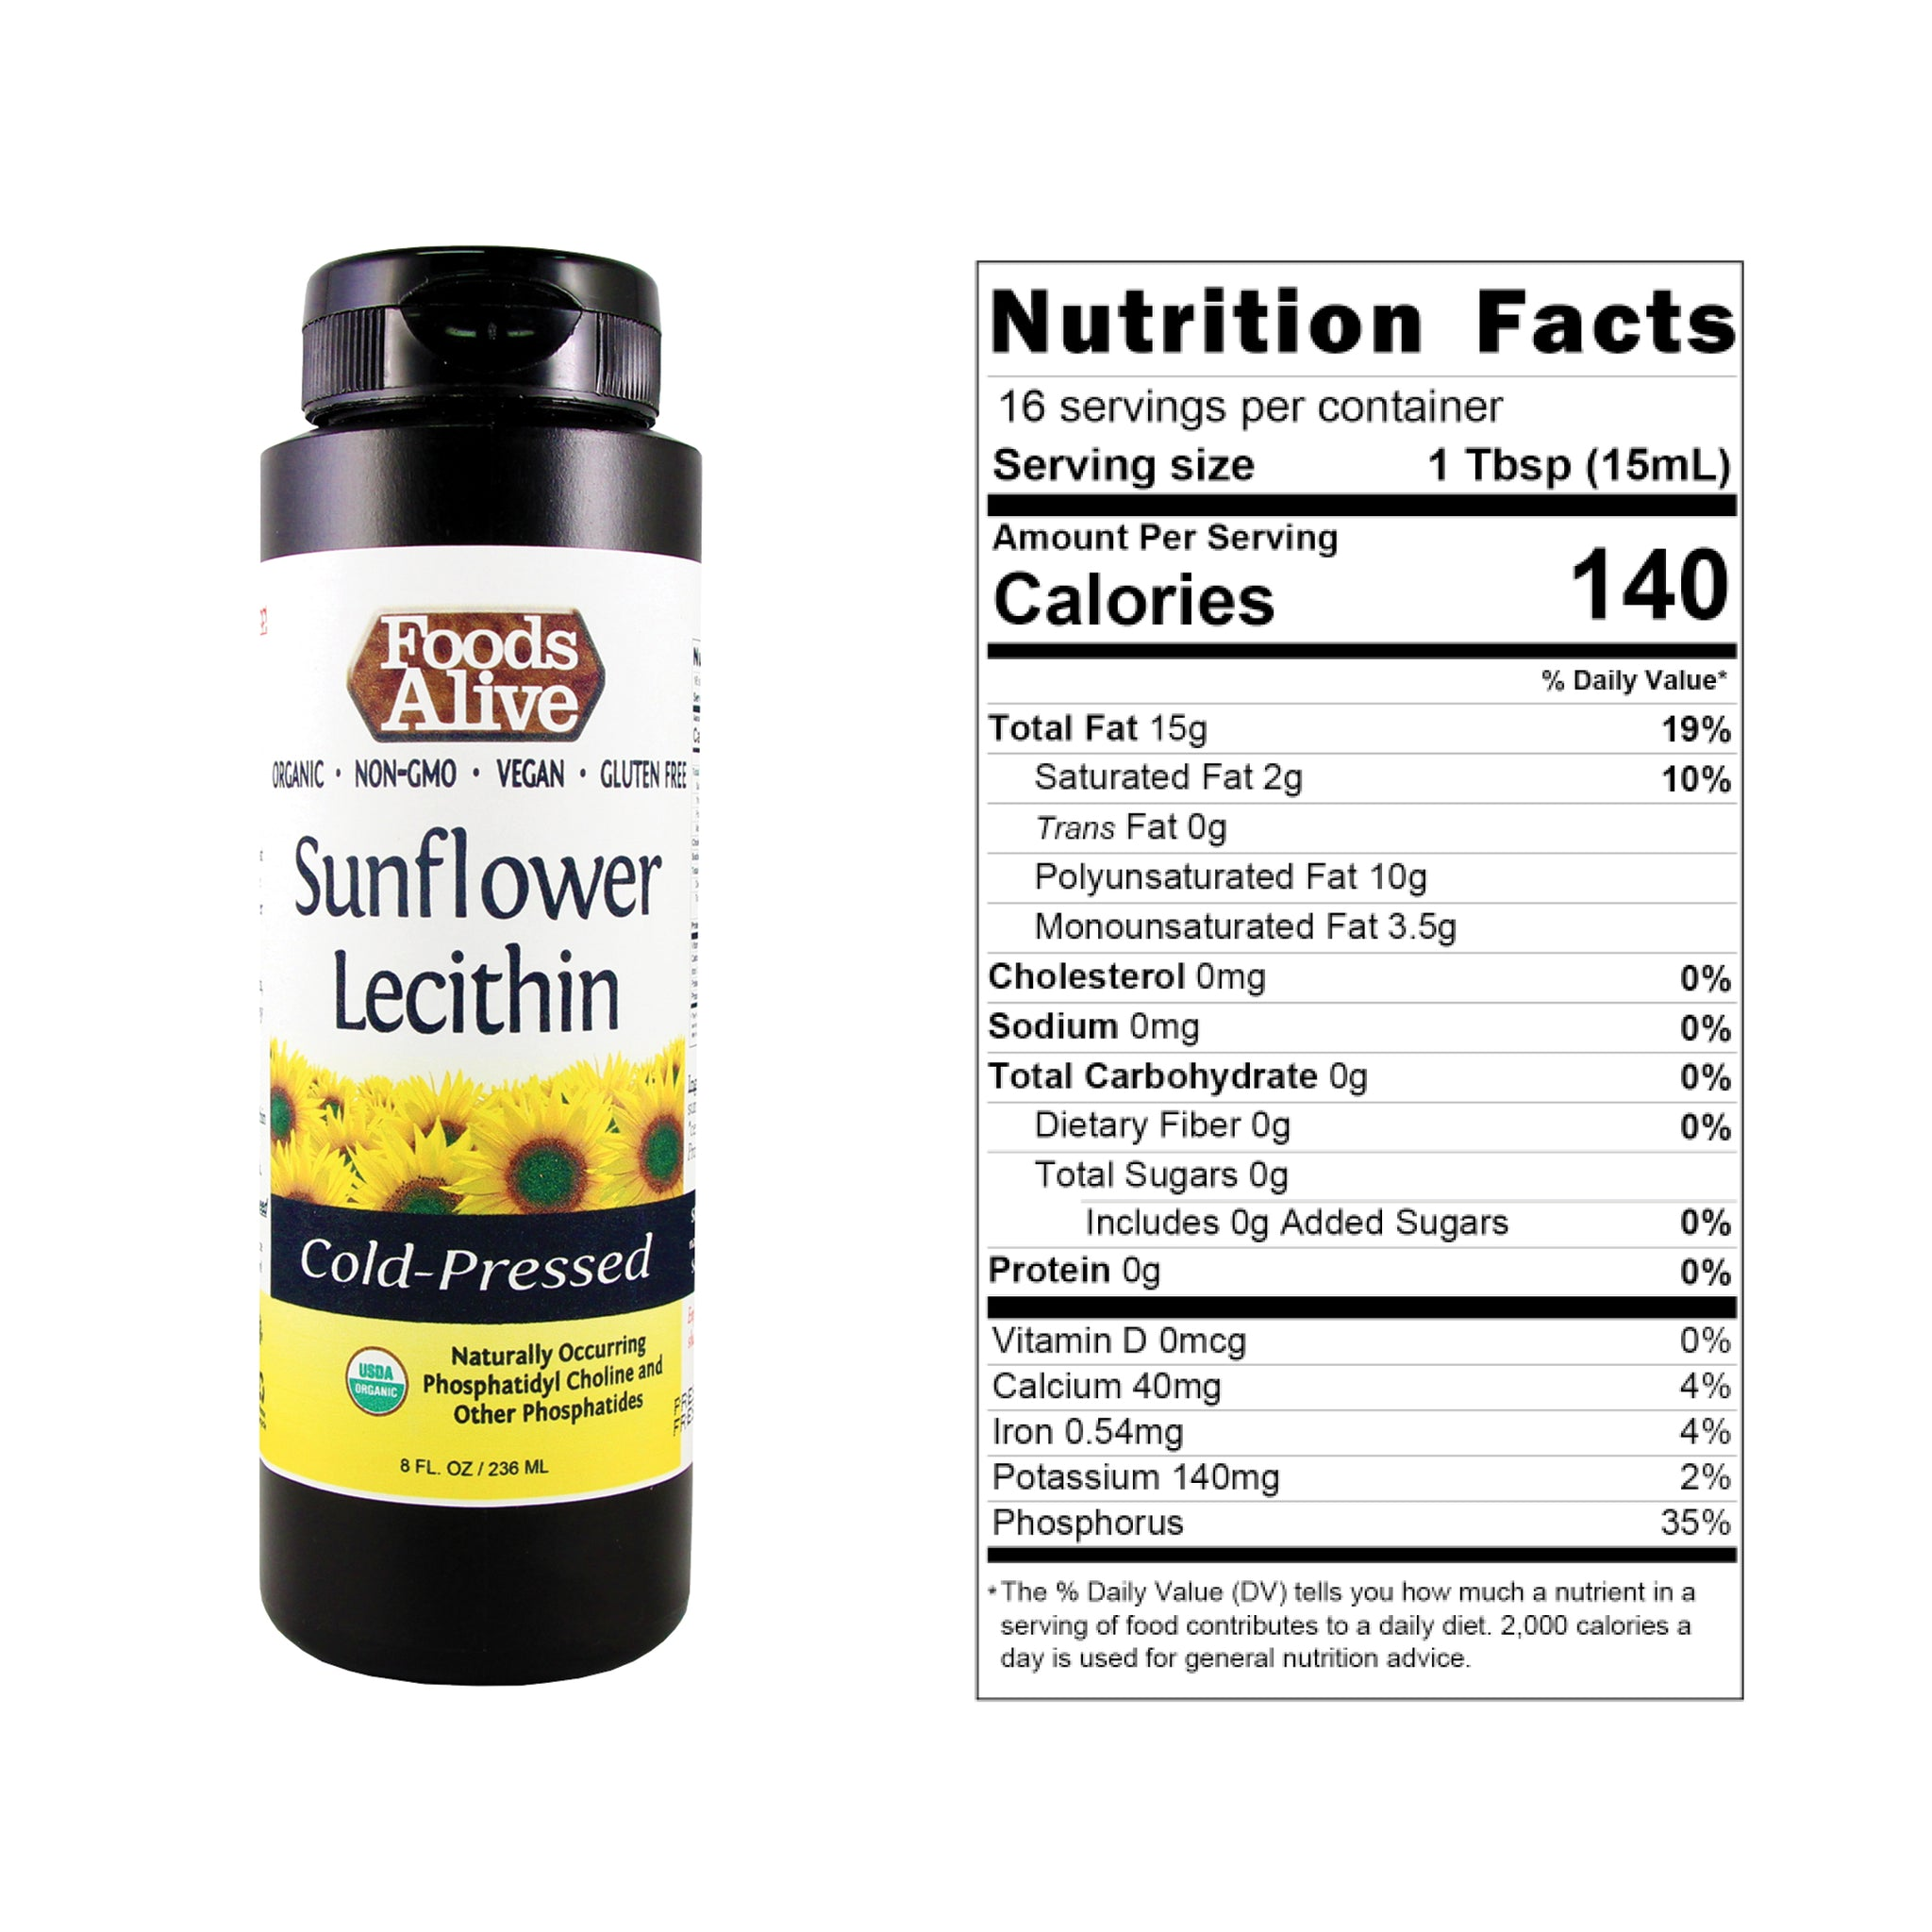 Organic Sunflower Lecithin 8oz with Nutritional Panel - Foods Alive